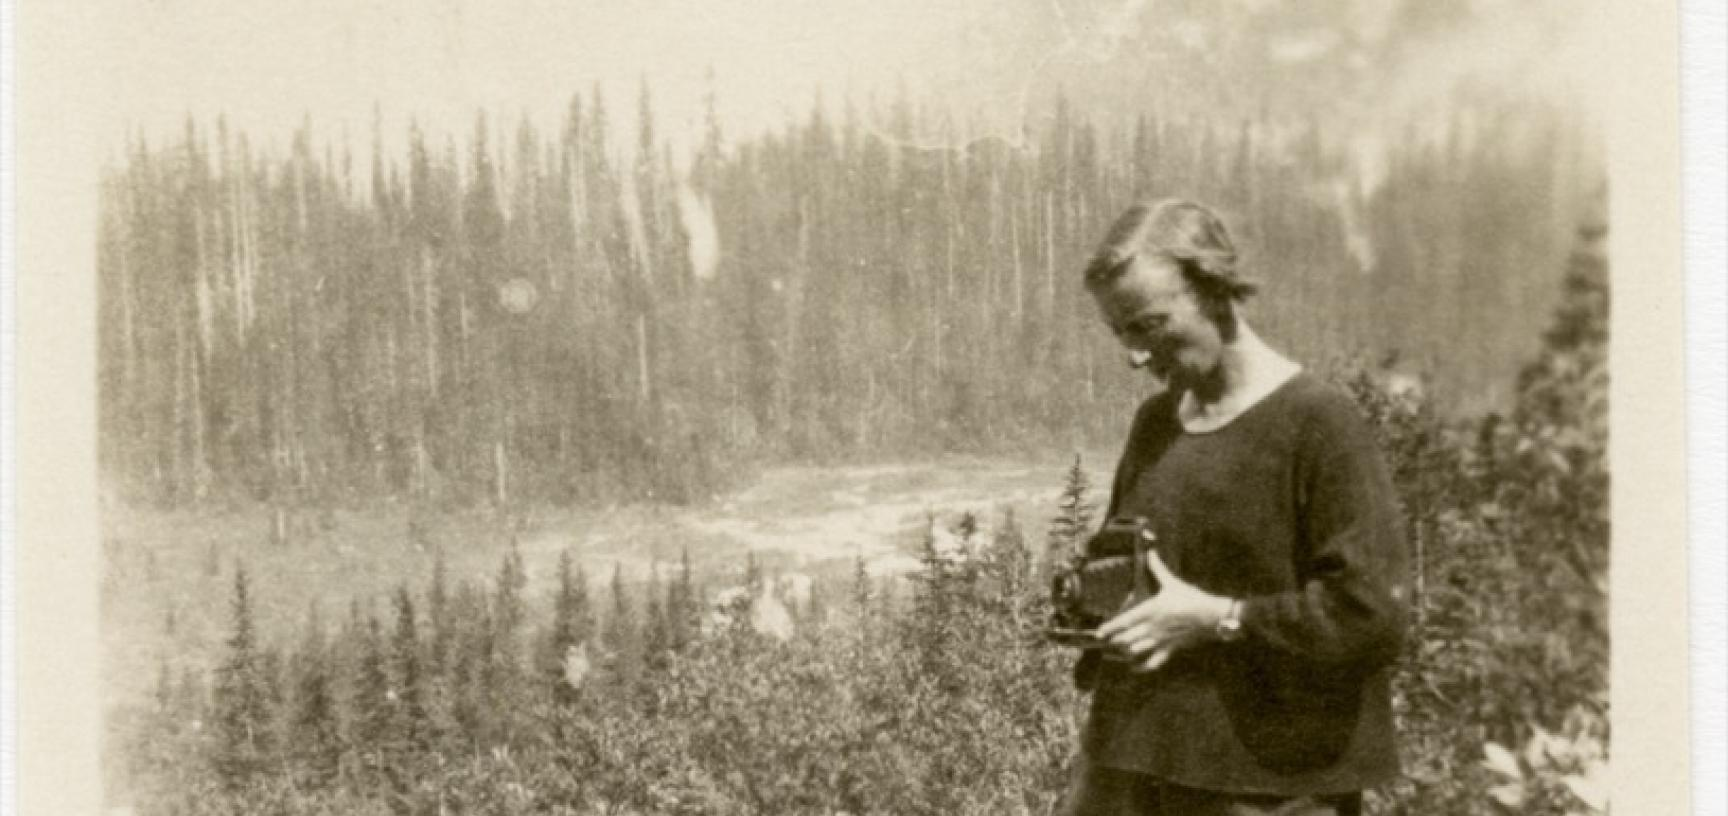 Beatrice Blackwood taking a photograph during her fieldwork in Yoho Valley, British Columbia, Canada, in 1925. Photographer unknown; print donated by Beatrice Mary Blackwood to the Pitt Rivers Museum in 1973. (Copyright Pitt Rivers Museum, University of O